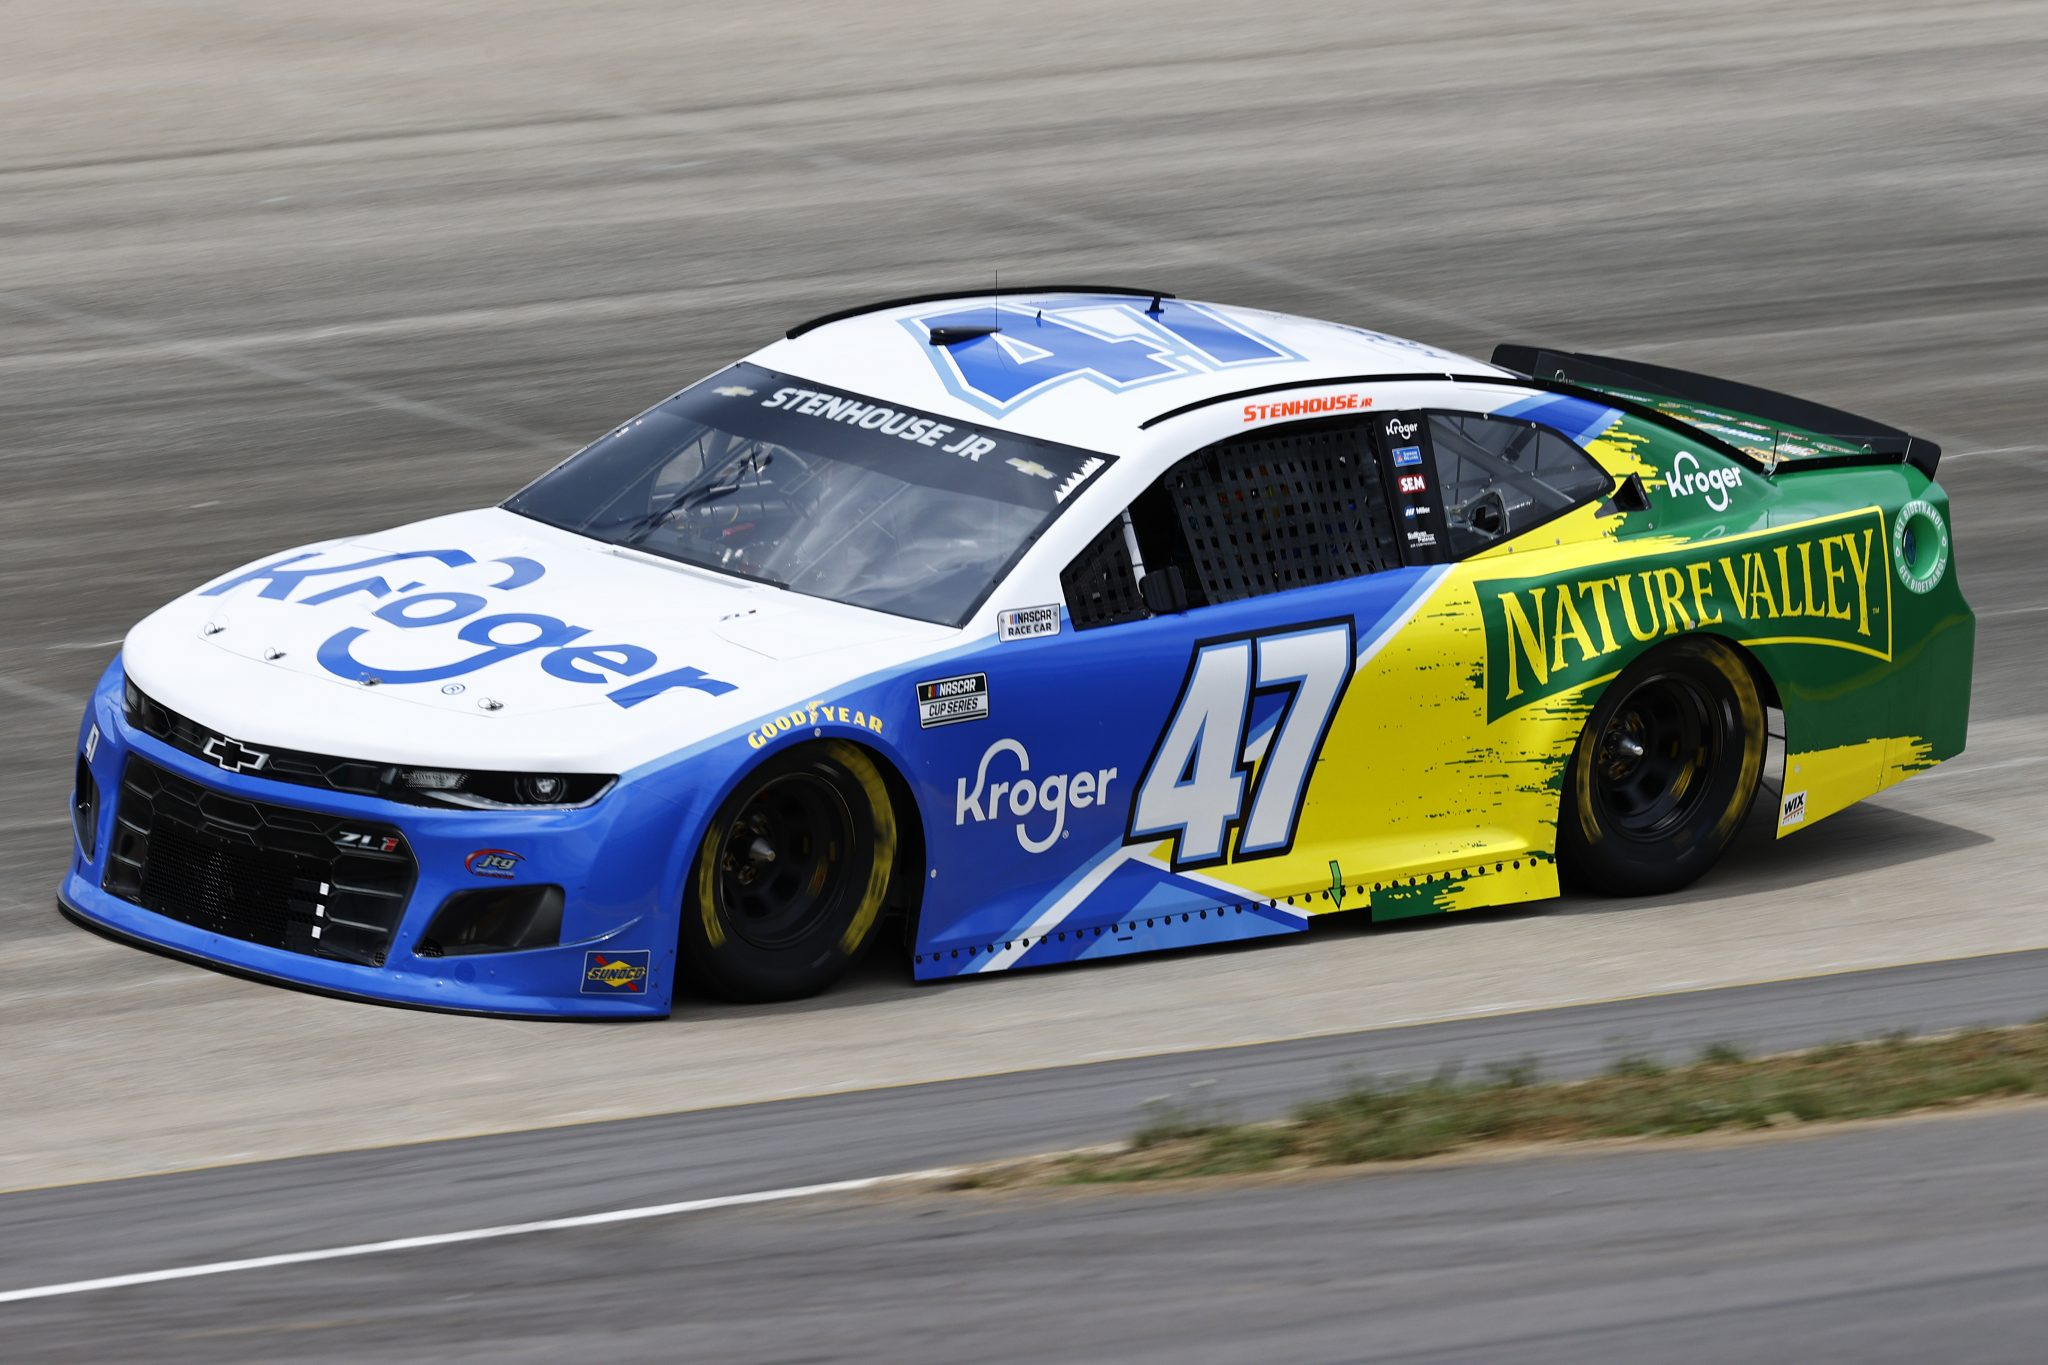 LEBANON, TENNESSEE - JUNE 19: Ricky Stenhouse Jr., driver of the #47 Kroger/Nature Valley Chevrolet, drives during practice for the NASCAR Cup Series Ally 400 at Nashville Superspeedway on June 19, 2021 in Lebanon, Tennessee. (Photo by Jared C. Tilton/Getty Images)   Getty Images